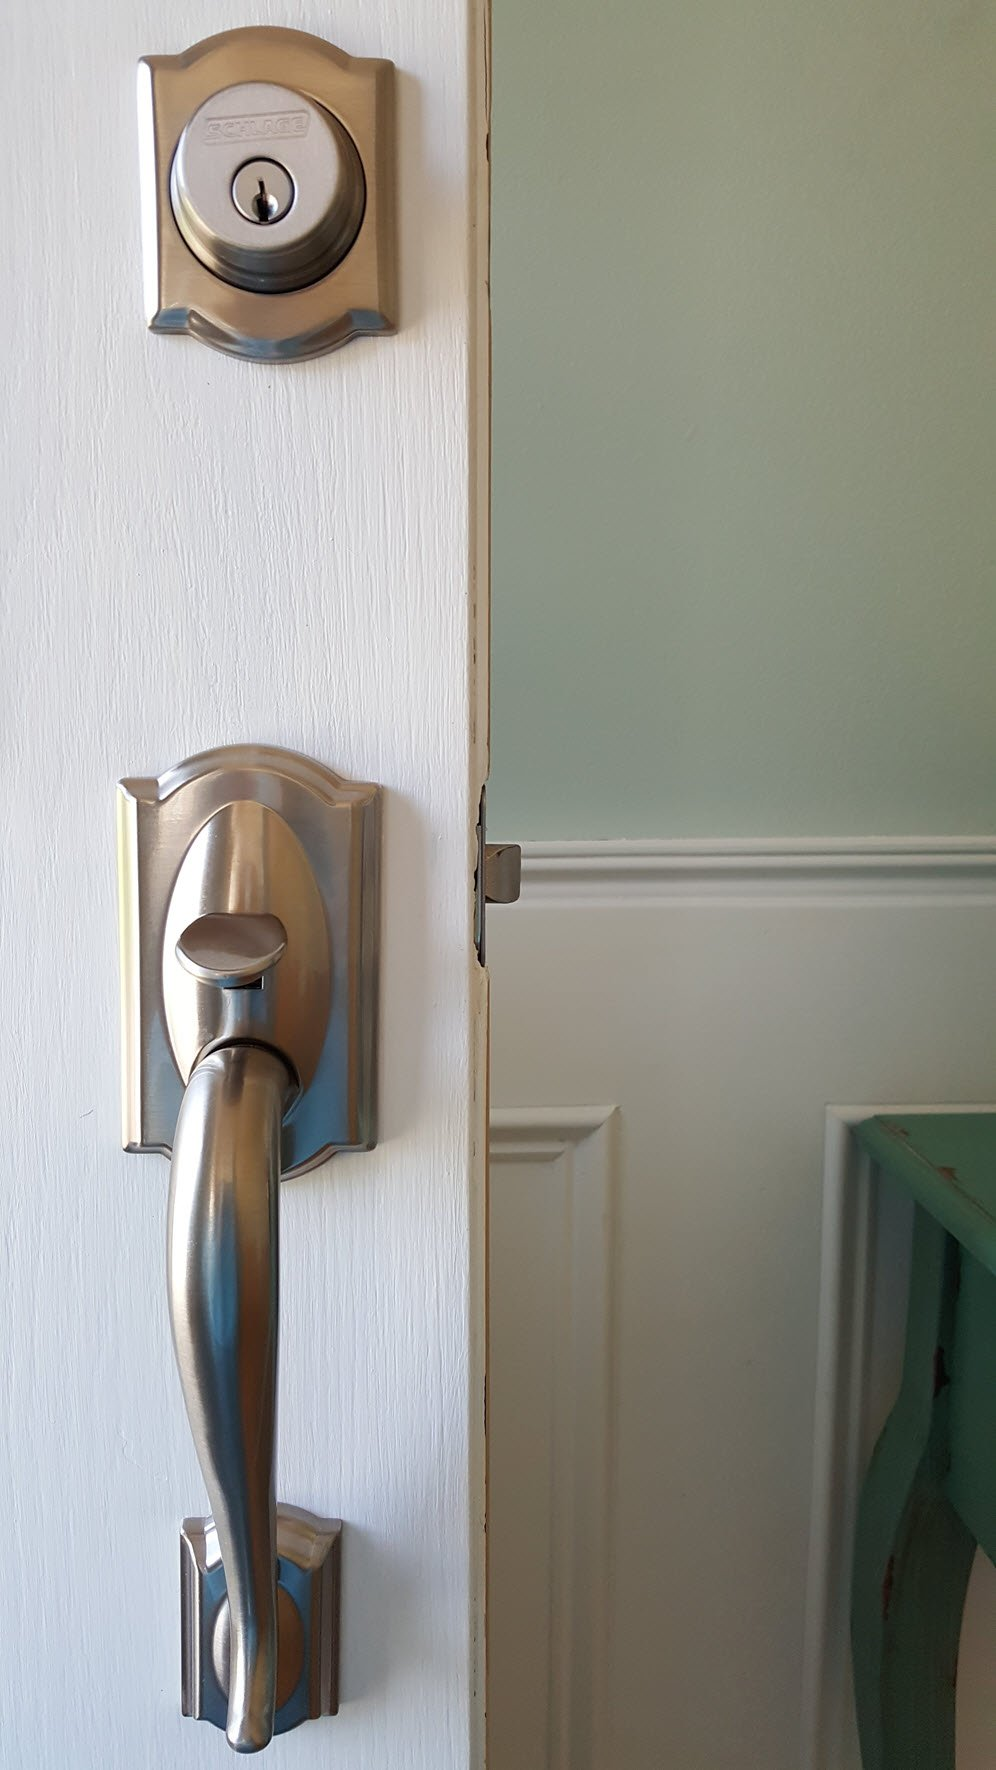 Our new door hardware dressed up the door beautifully and is a quick and easy home improvement - Housekaboodle